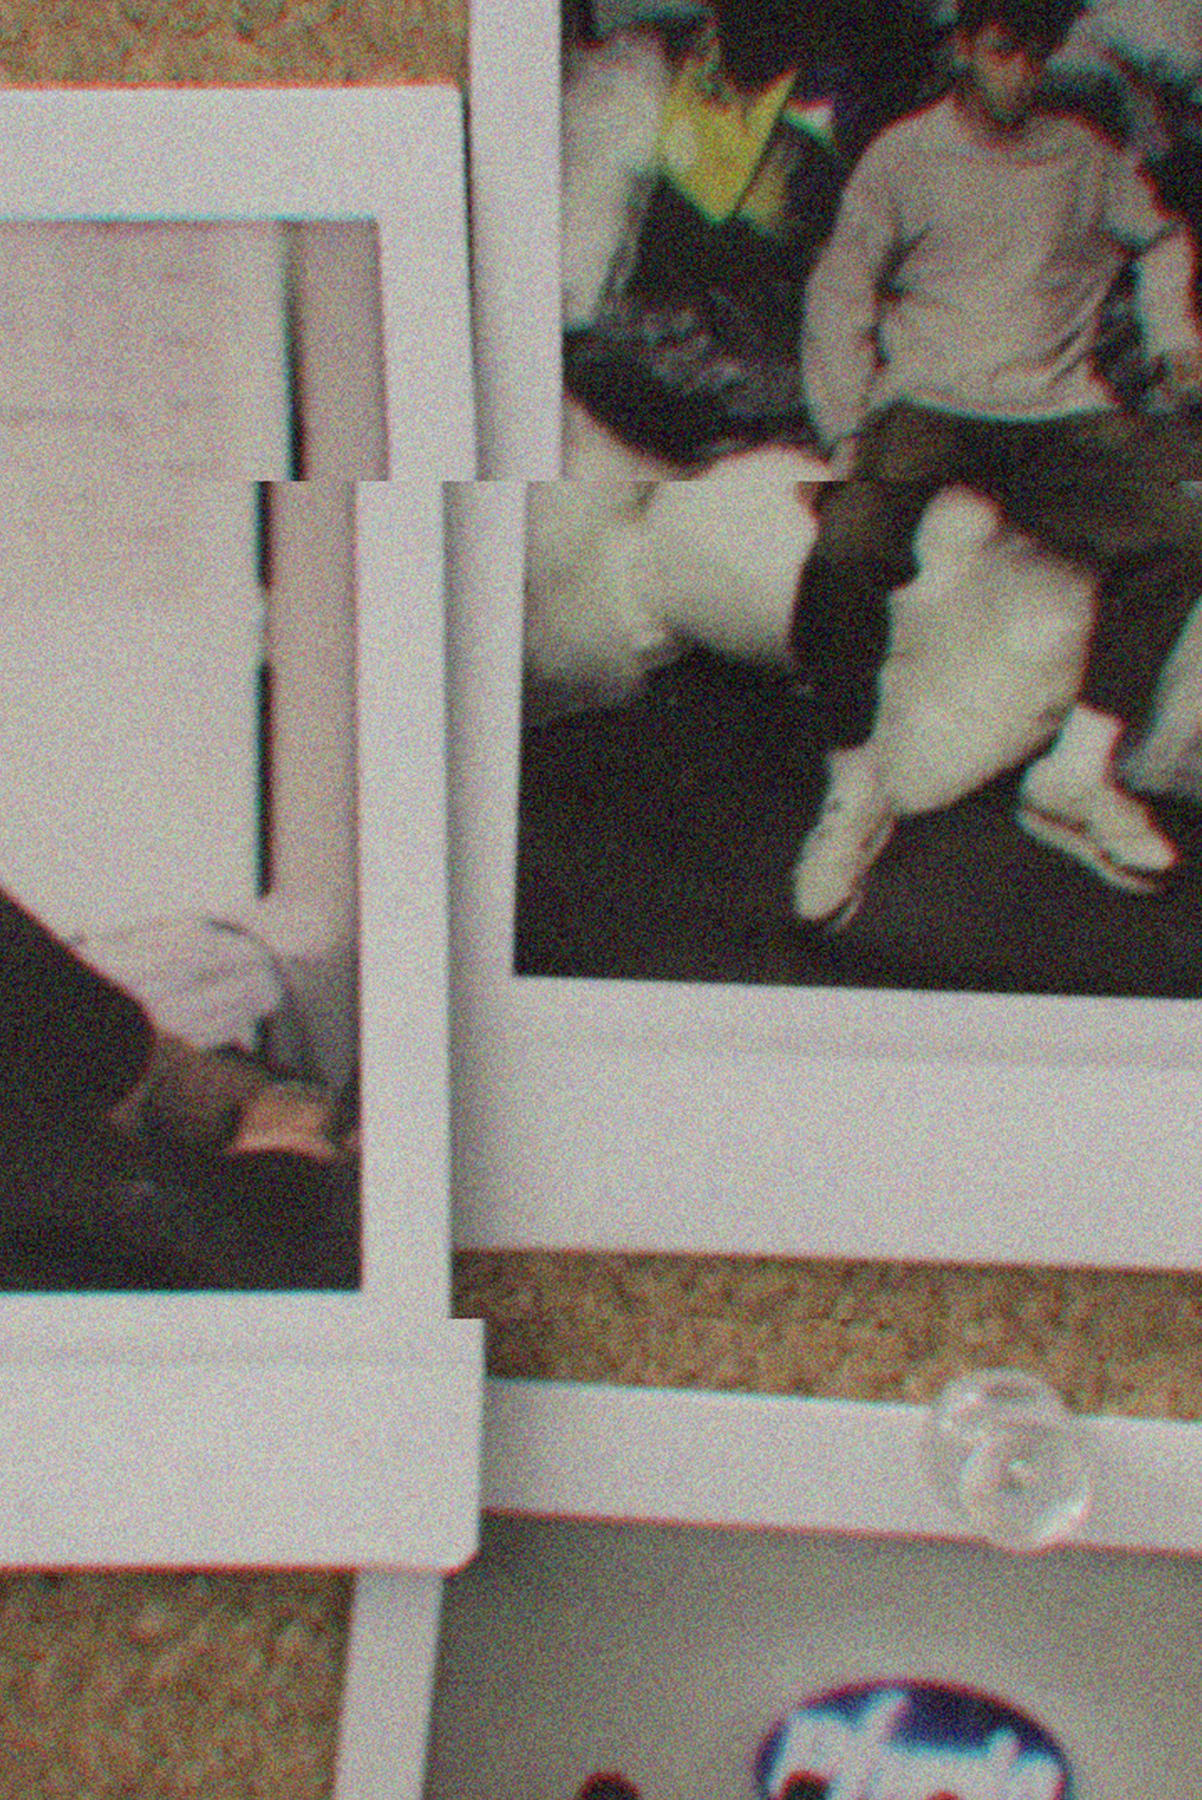 Polaroid images in the Rhude studio